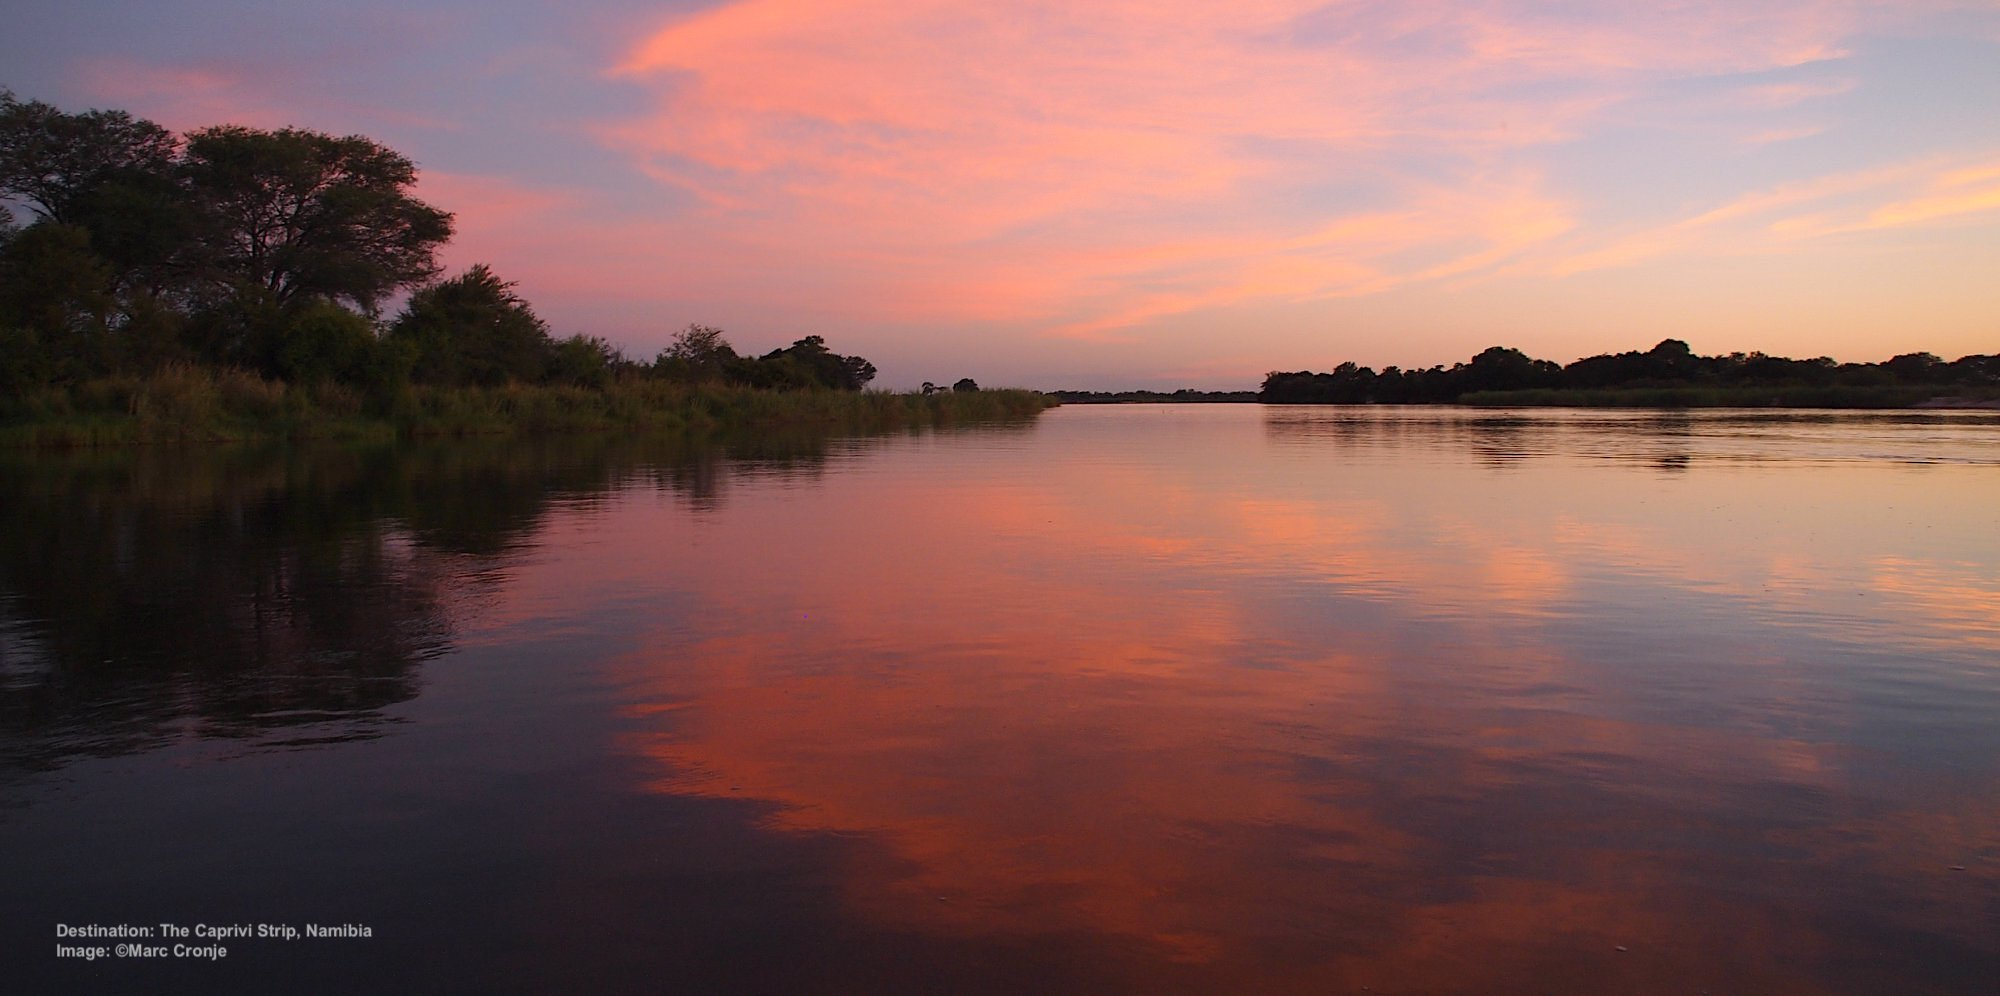 NAMIBIA IS FULL OF SURPRISES. THIS IS THE CAPRIVI STRIP, NAMIBIA'S NARROW PAN HANDLE, A LUSH DELTA REPLETE WITH WILDLIFE AND BIRDS. IMAGE:  ©MARC CRONJE